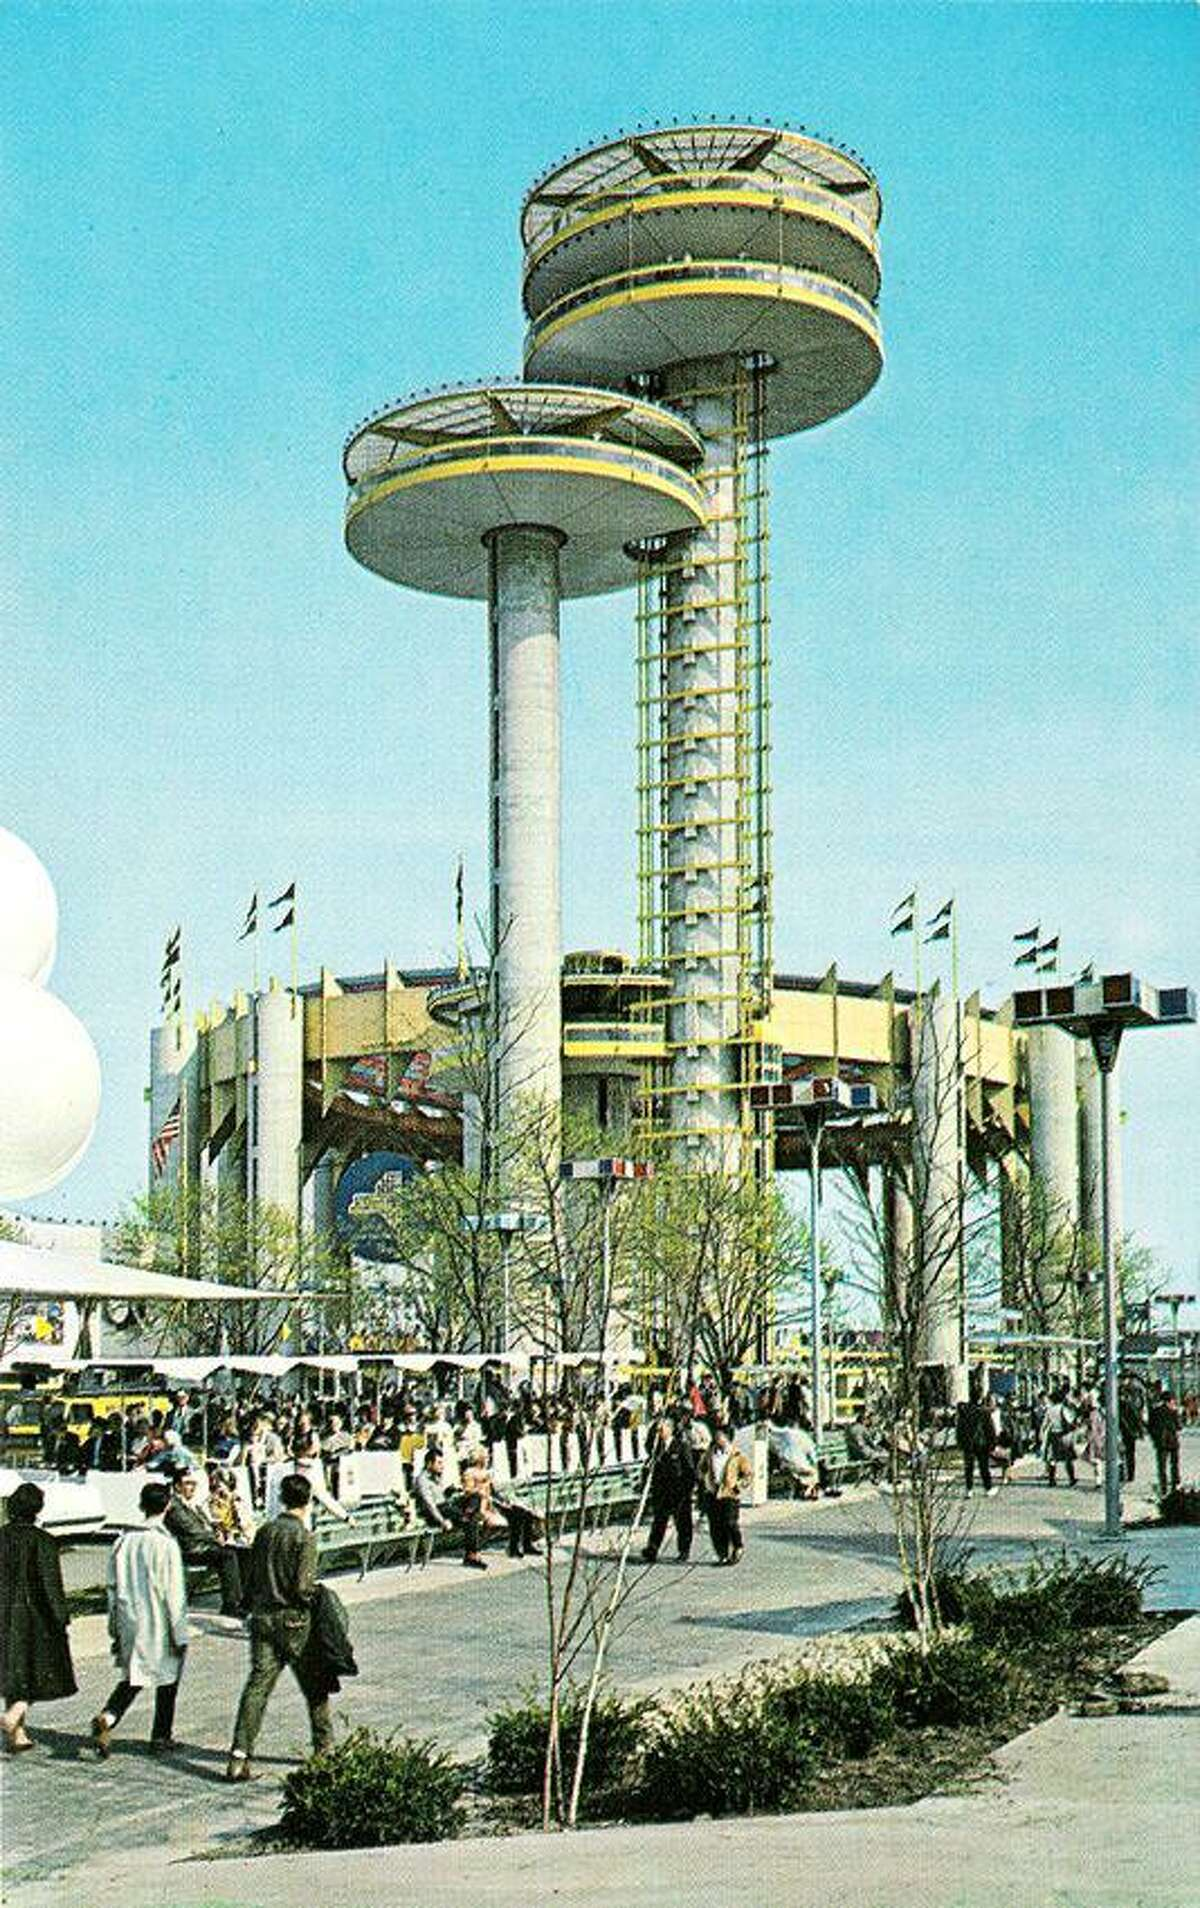 The Sherman Library will be offering a special program on The 1964/65 New York World's Fair.